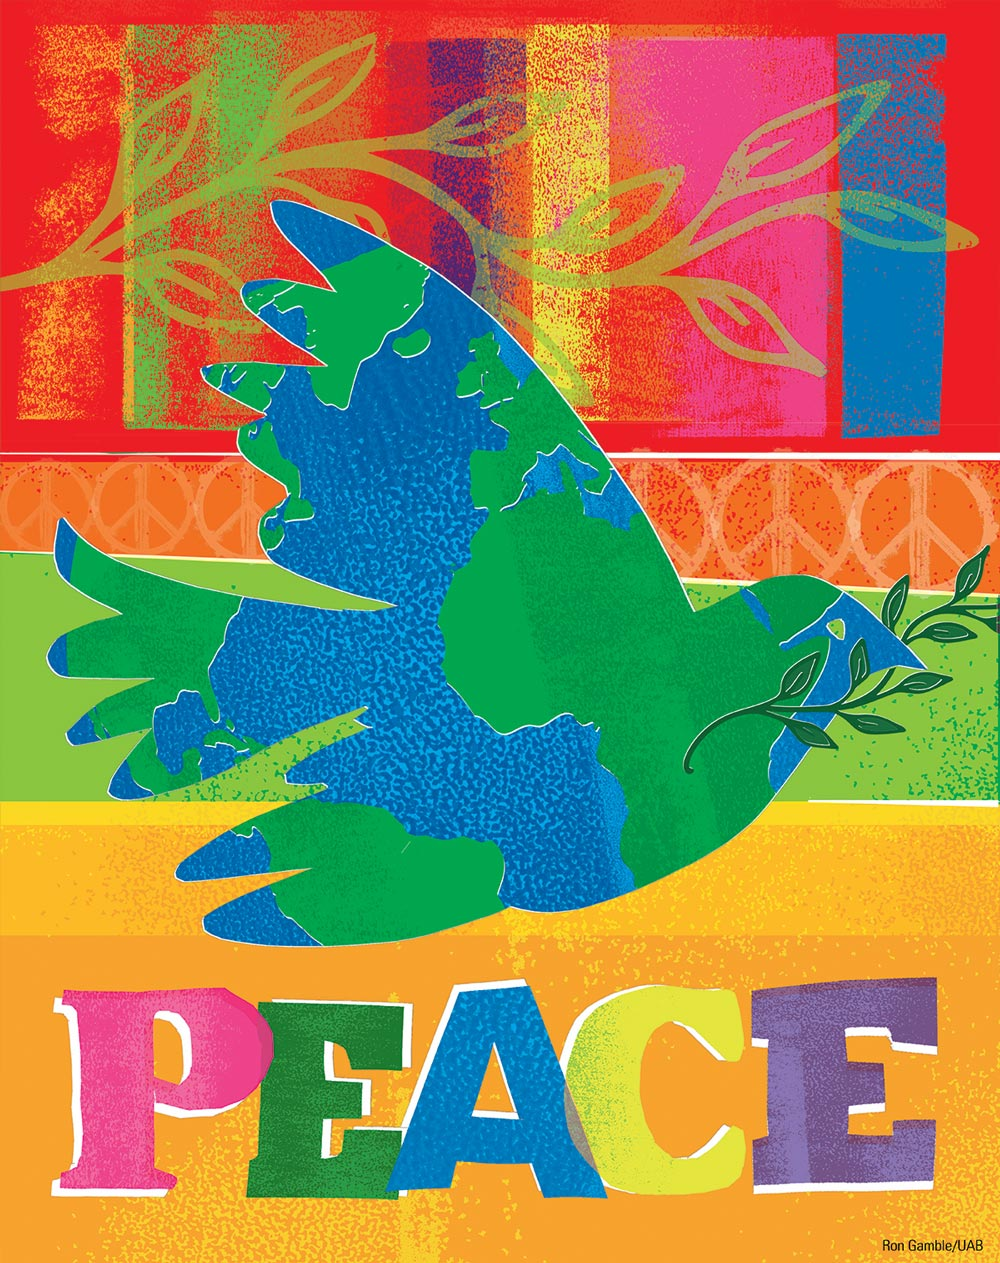 Colorful illustration of dove containing world map over the word 'Peace'; illustration by Ron Gamble